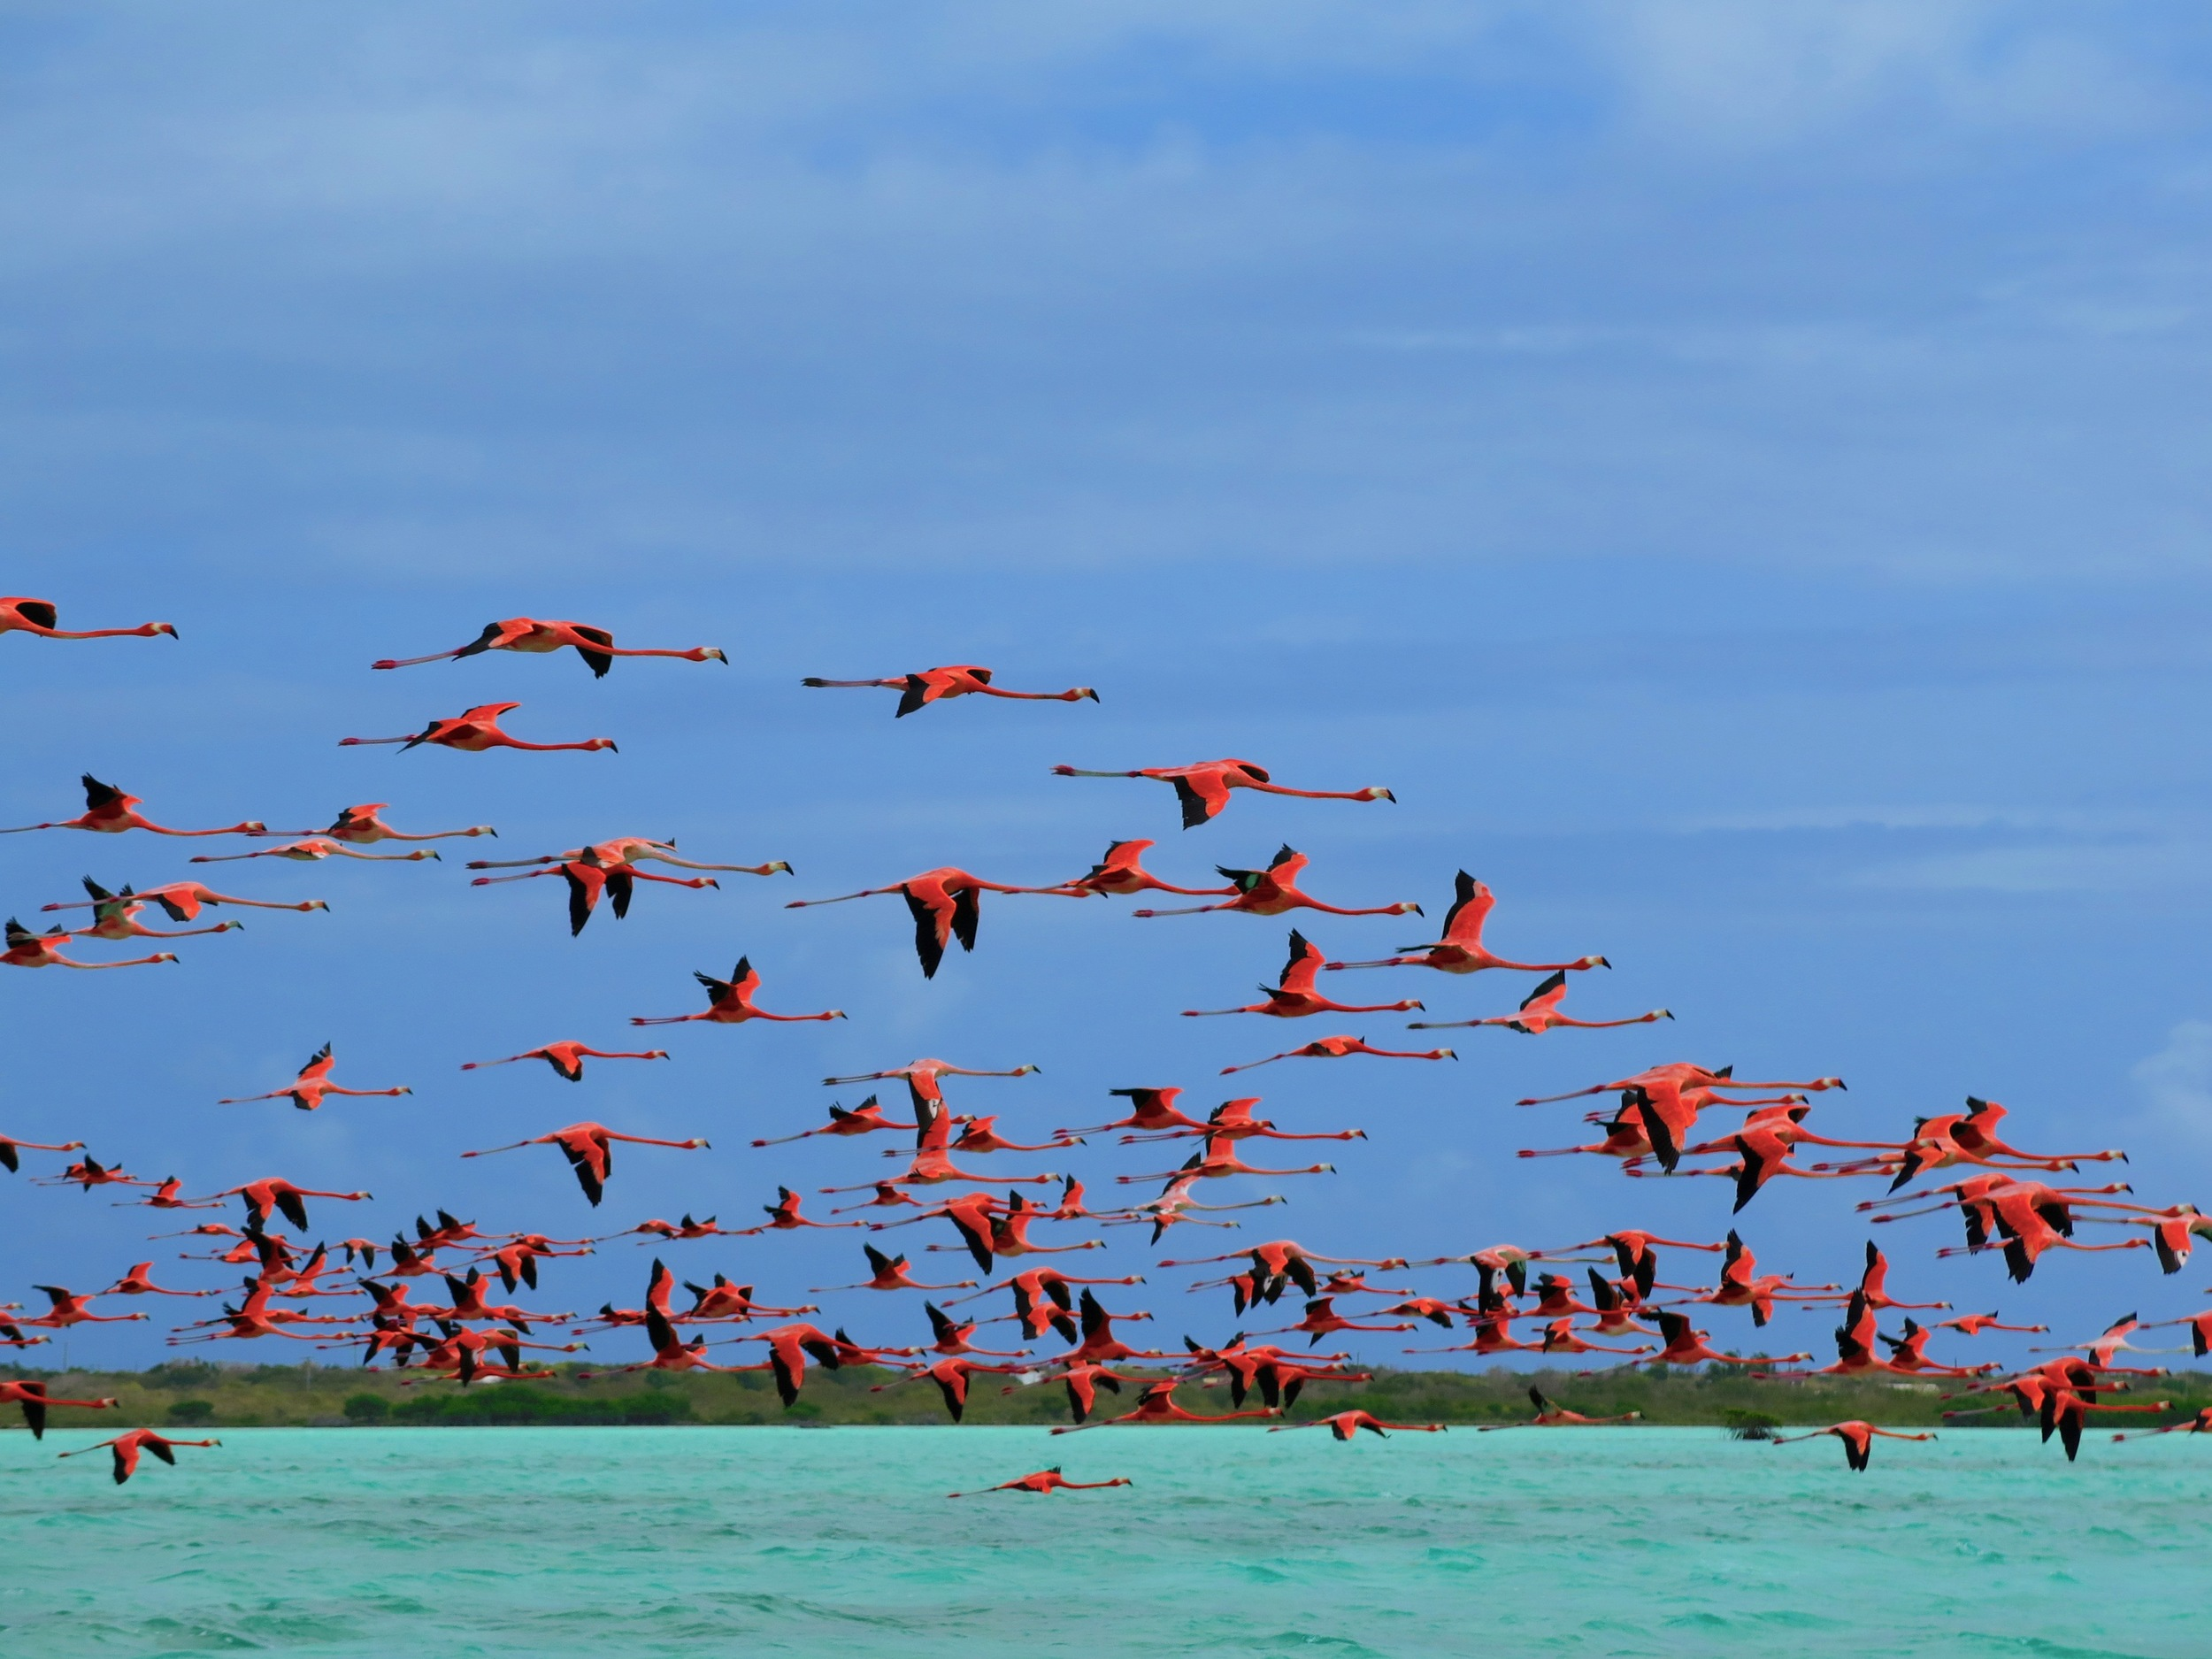 Wild Flamingos made for an exciting site on Anegada! What funny pink birds.